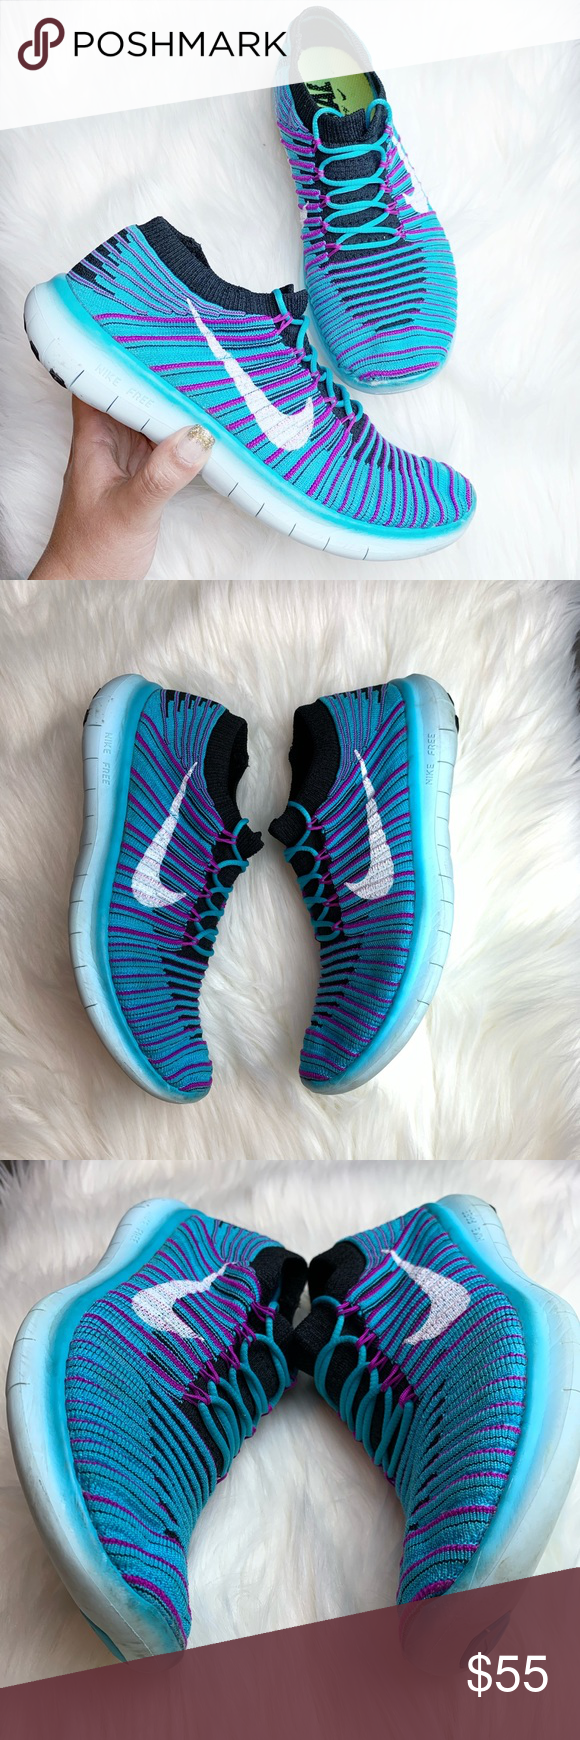 sneakers with extra cushion